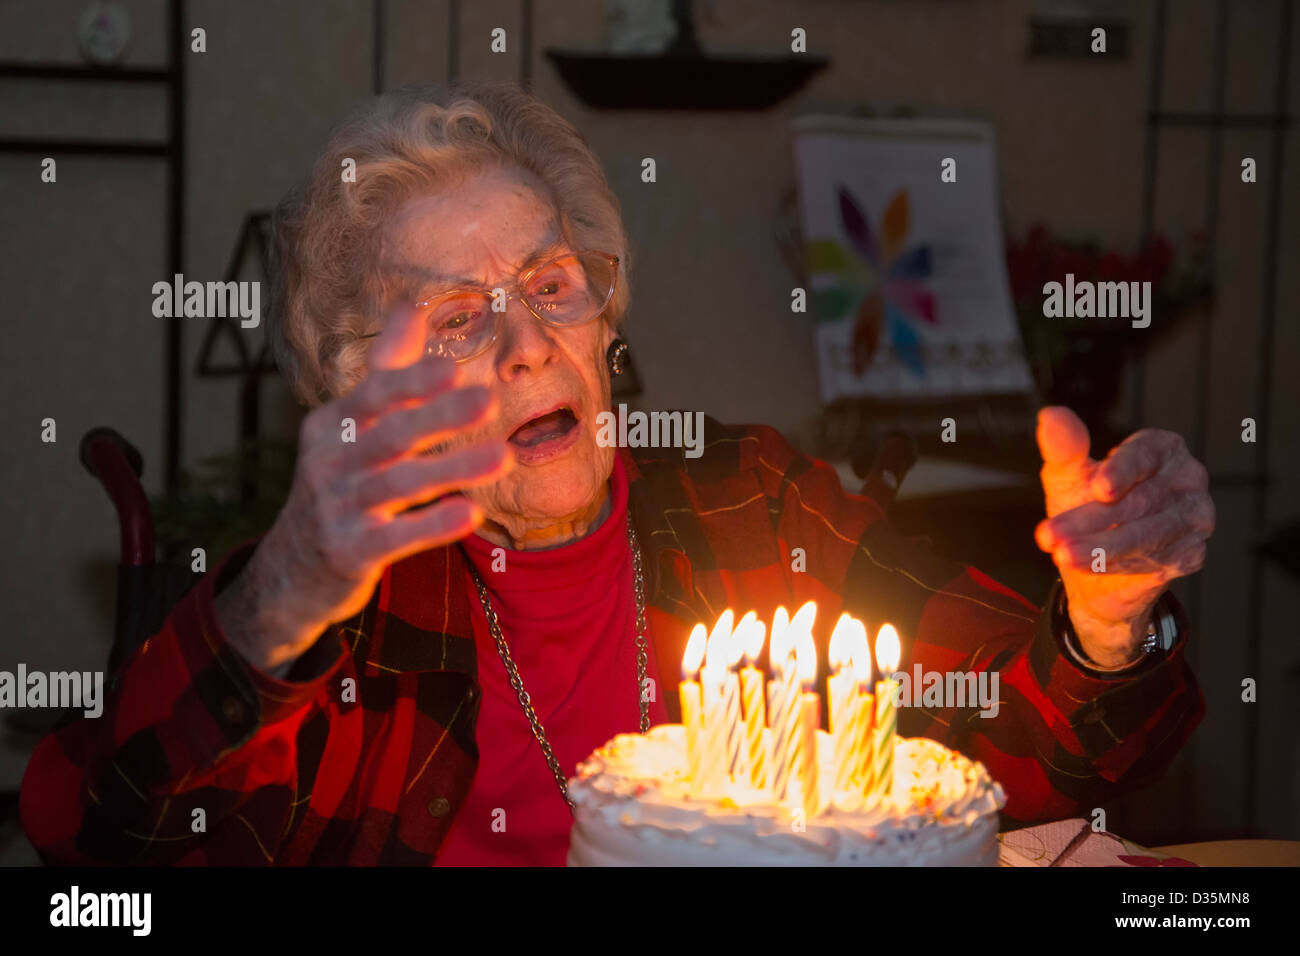 Sterling Heights, Michigan - Dorothy Newell célèbre son 99e anniversaire. Photo Stock